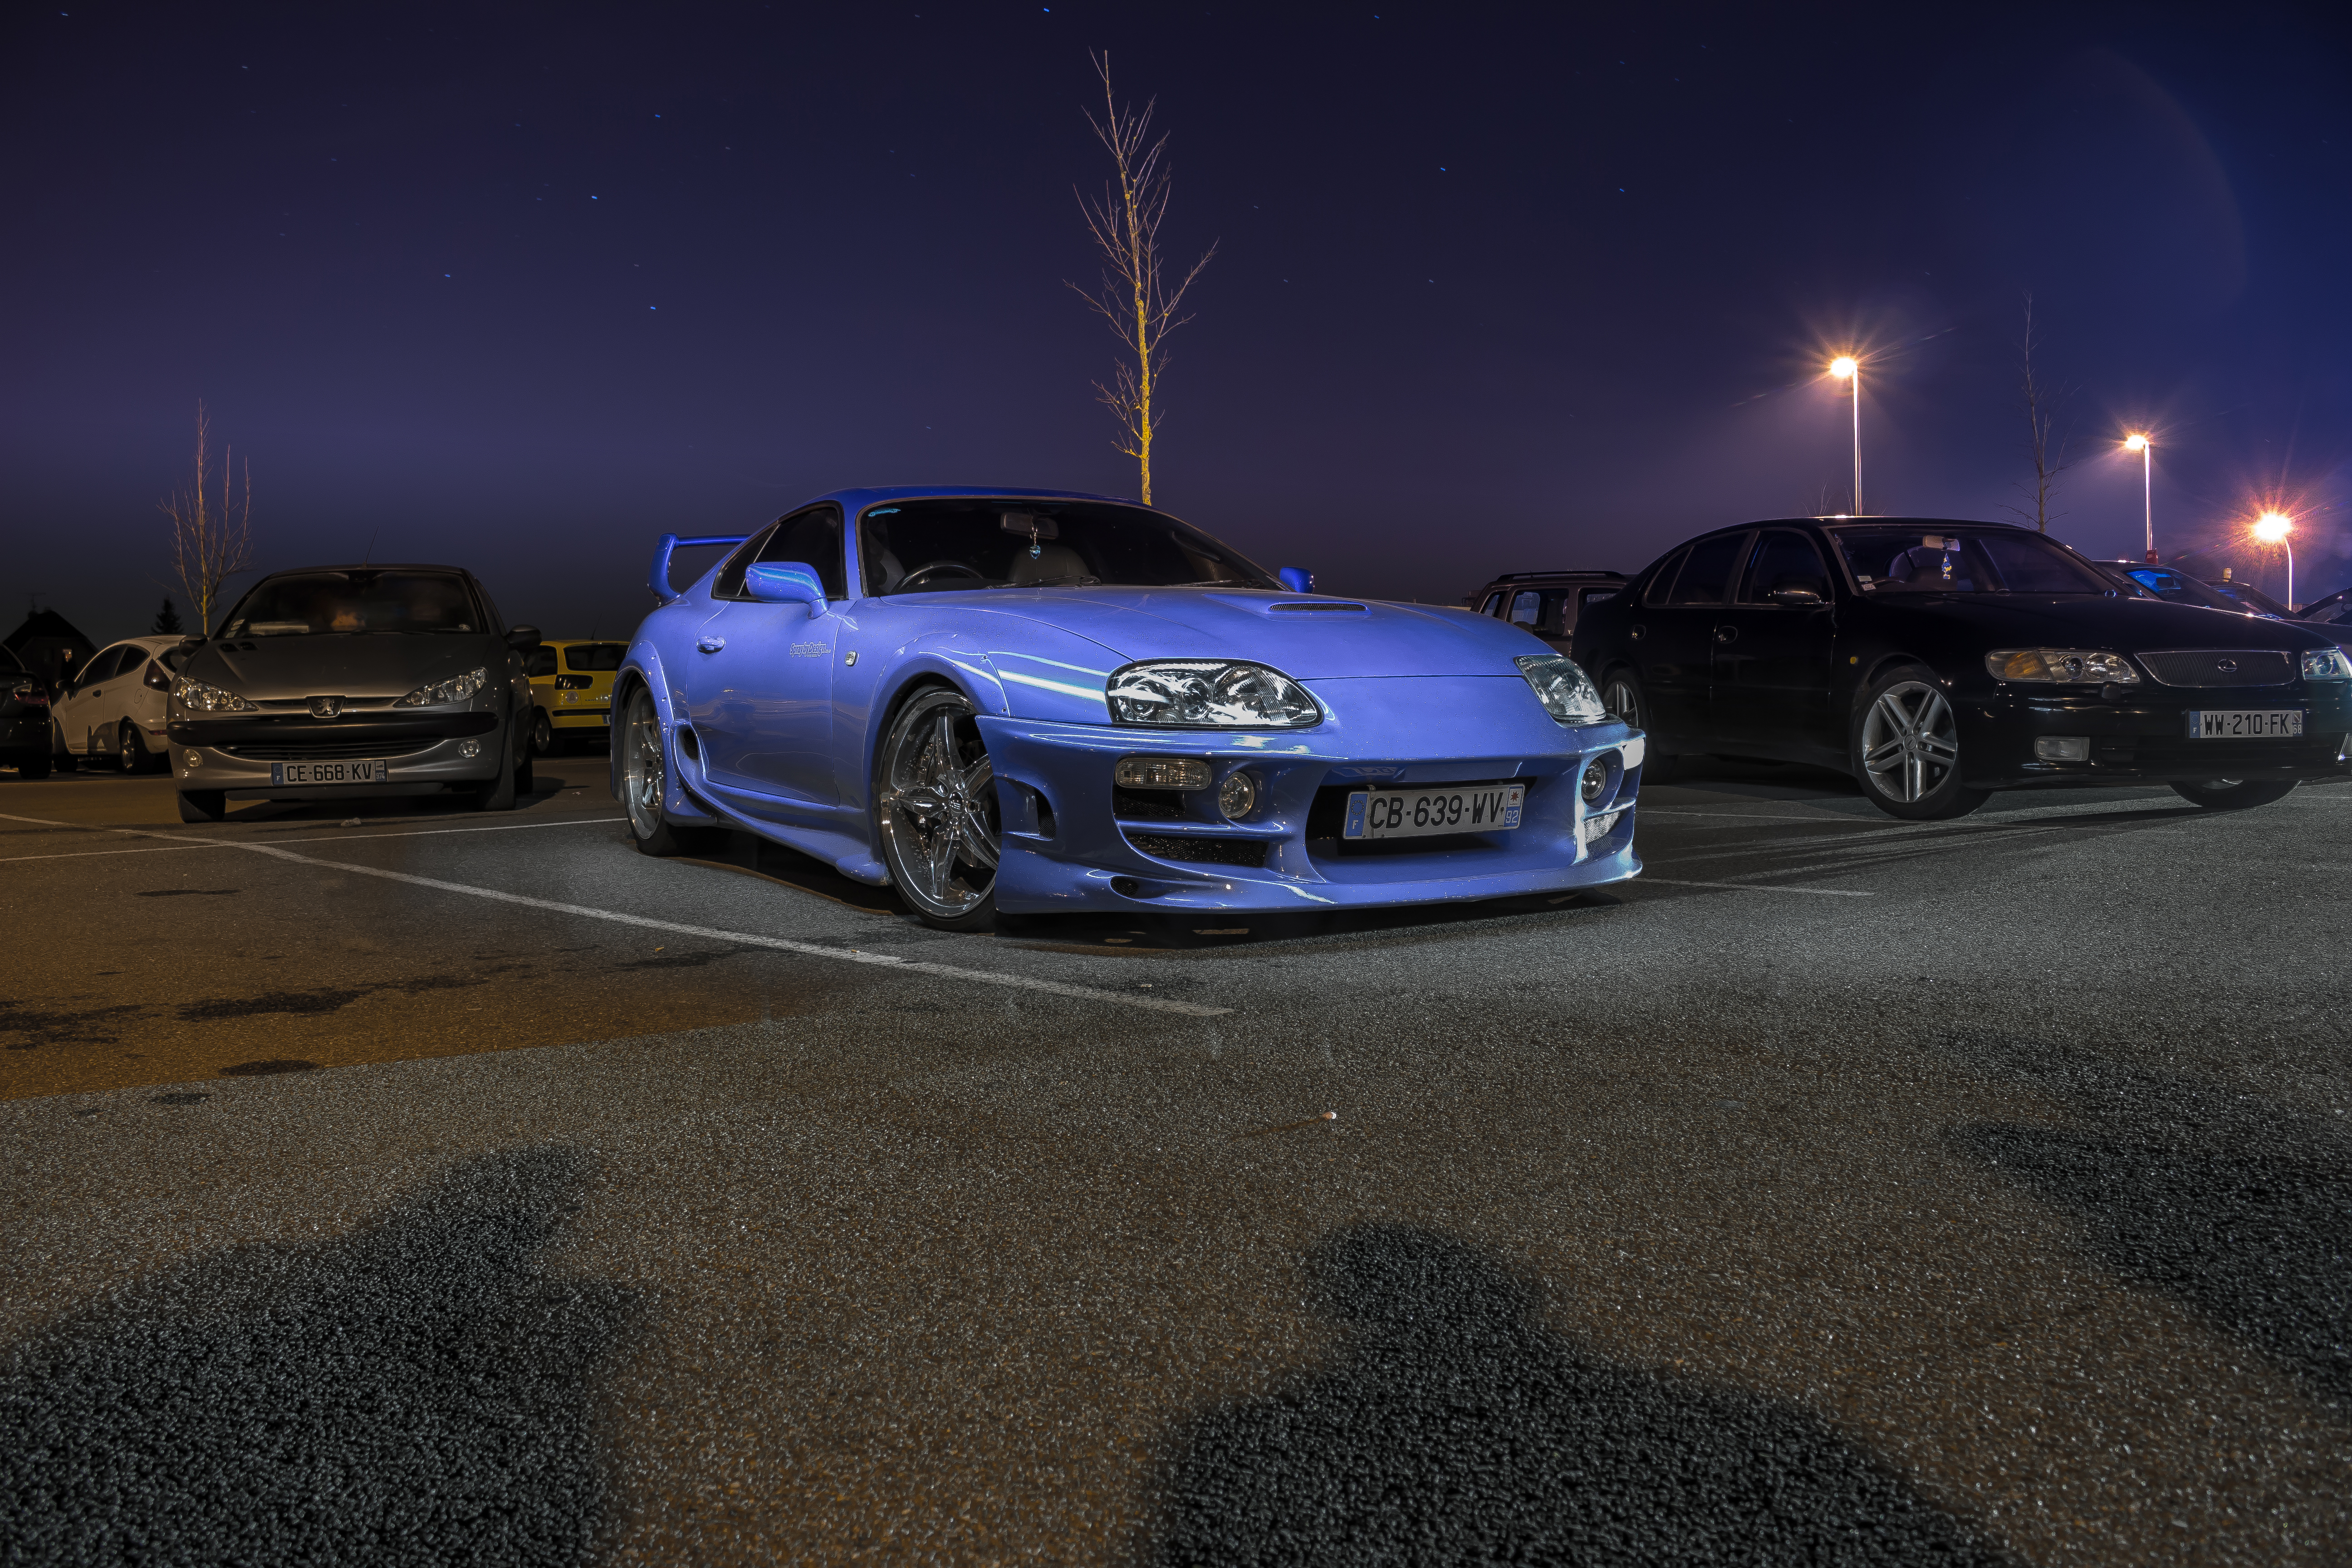 Meeting 68 2016 Toyota Supra MK4 by psykomysik on DeviantArt